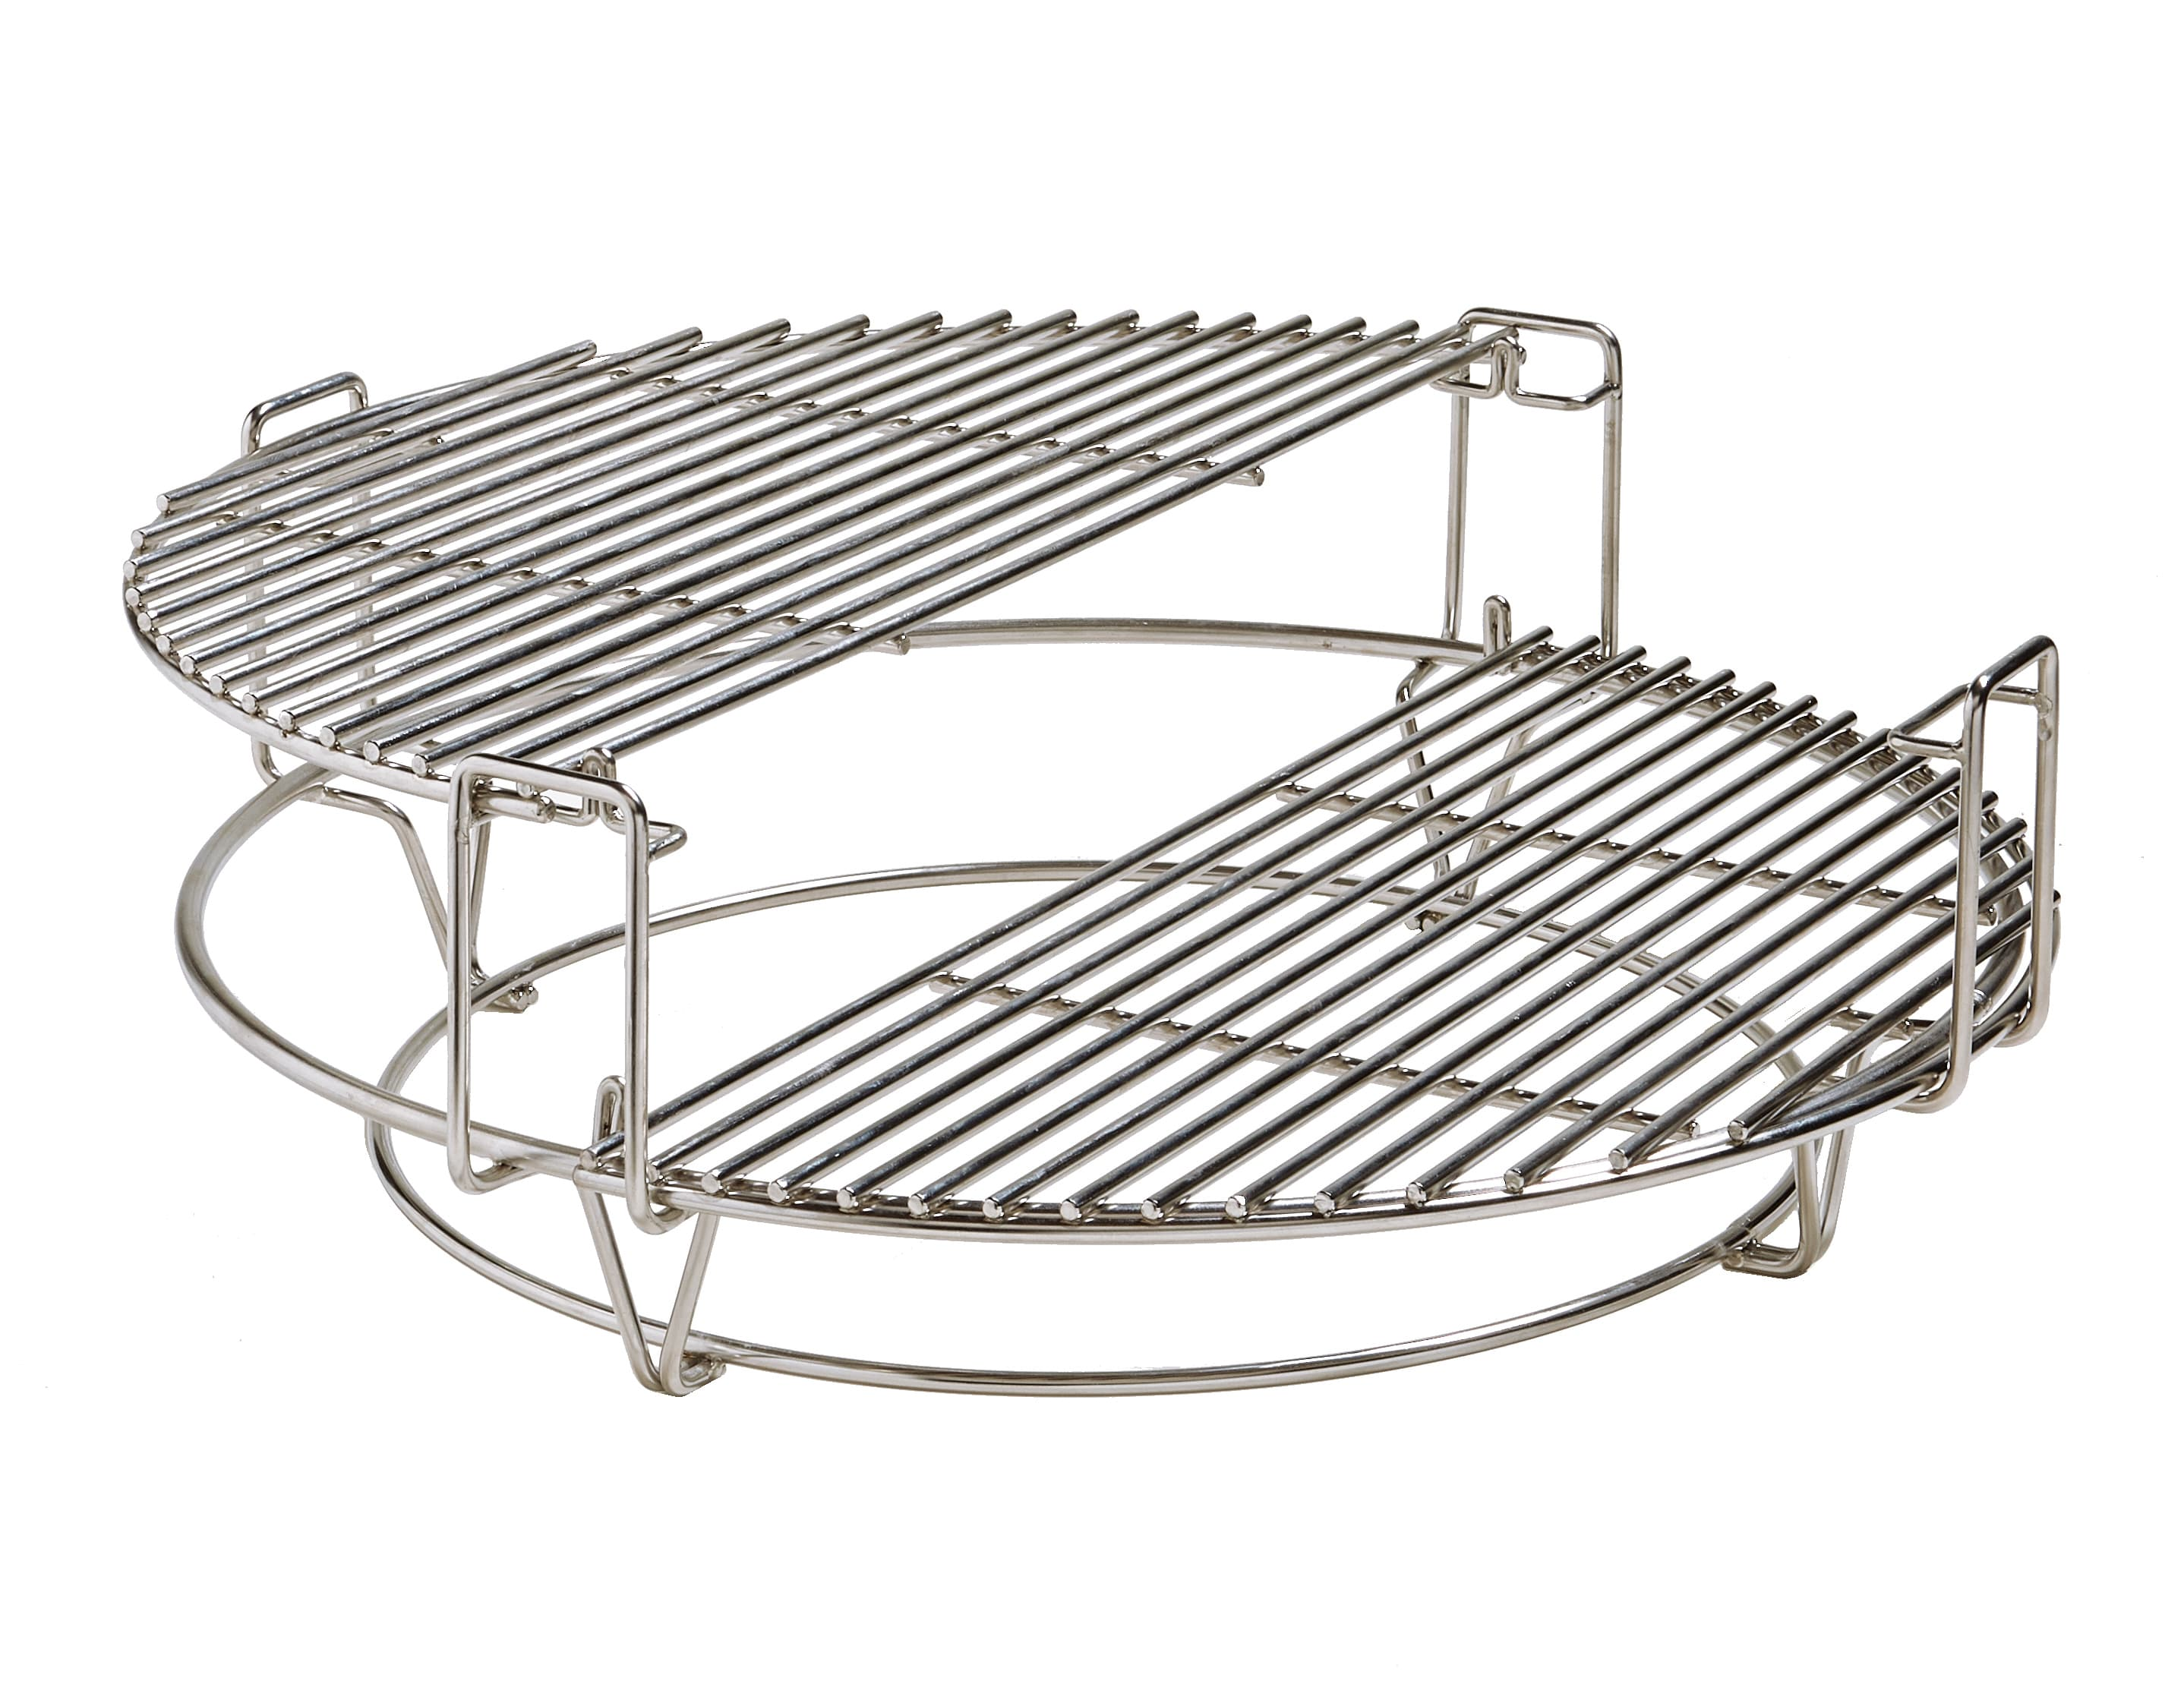 2-Tier Divide & Conquer Cooking System